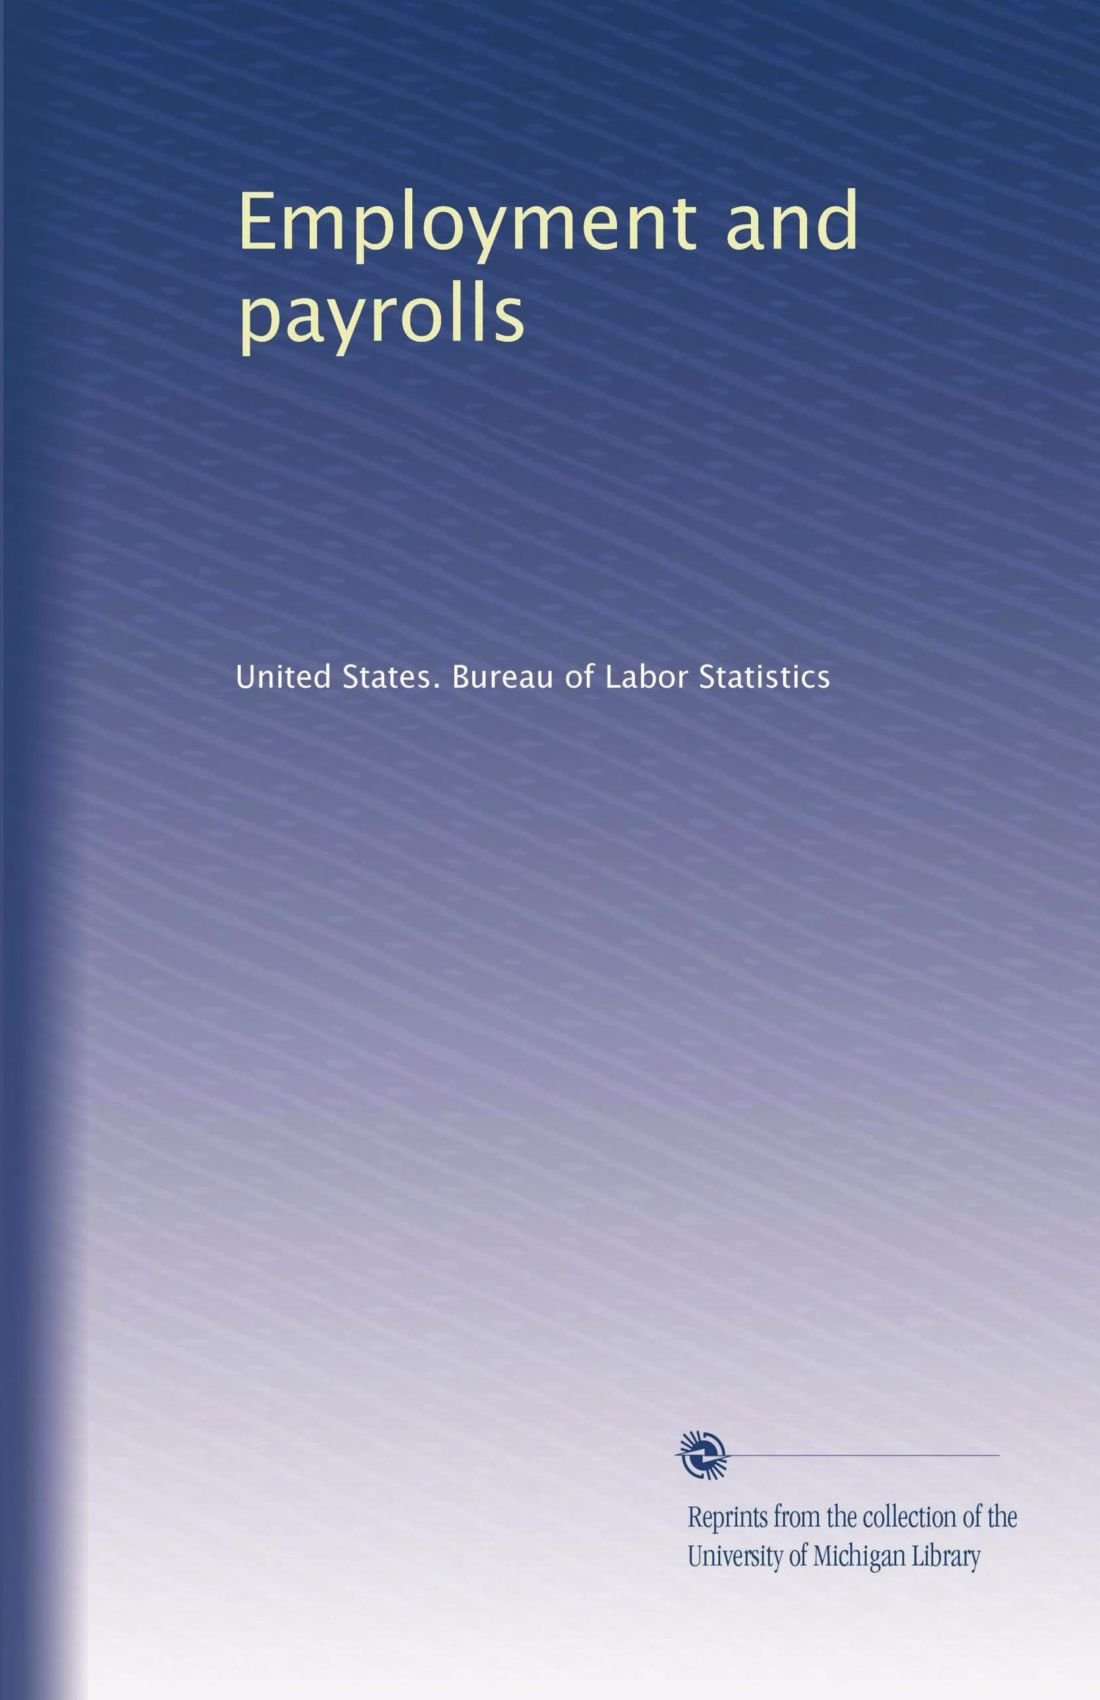 Download Employment and payrolls (Volume 7) PDF